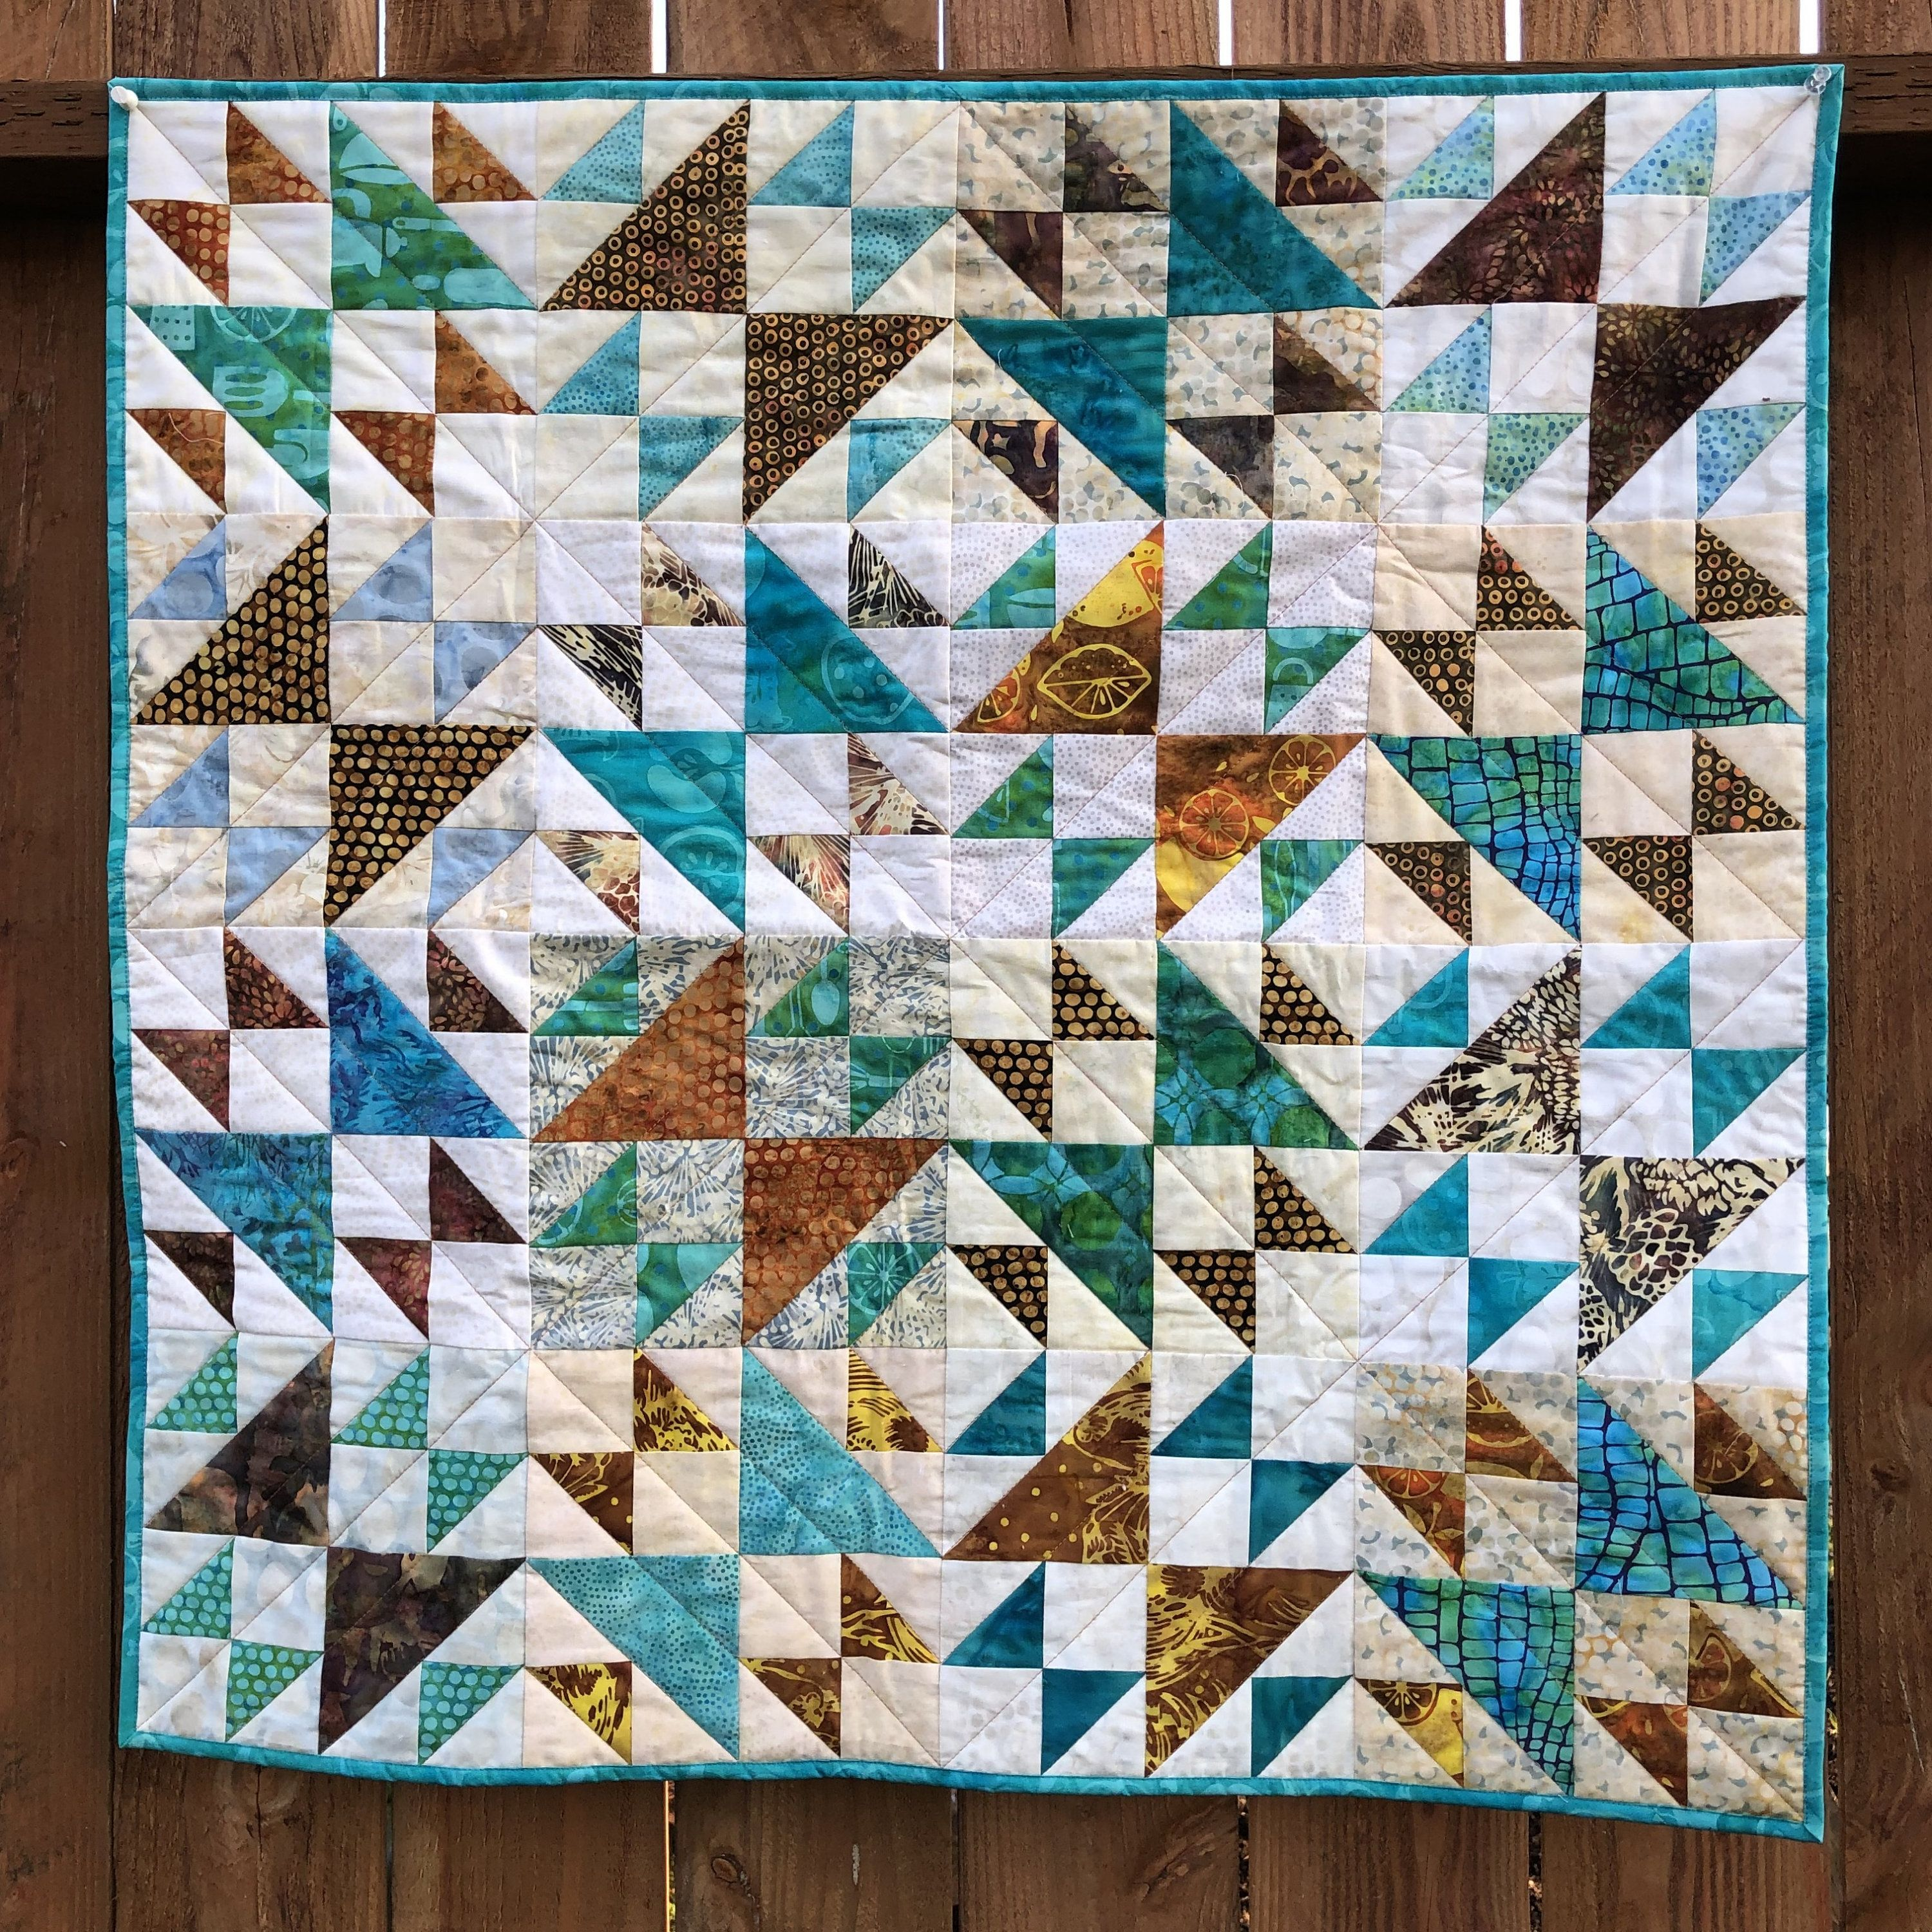 Teal And Brown Traditional Quilt For Sale, Small